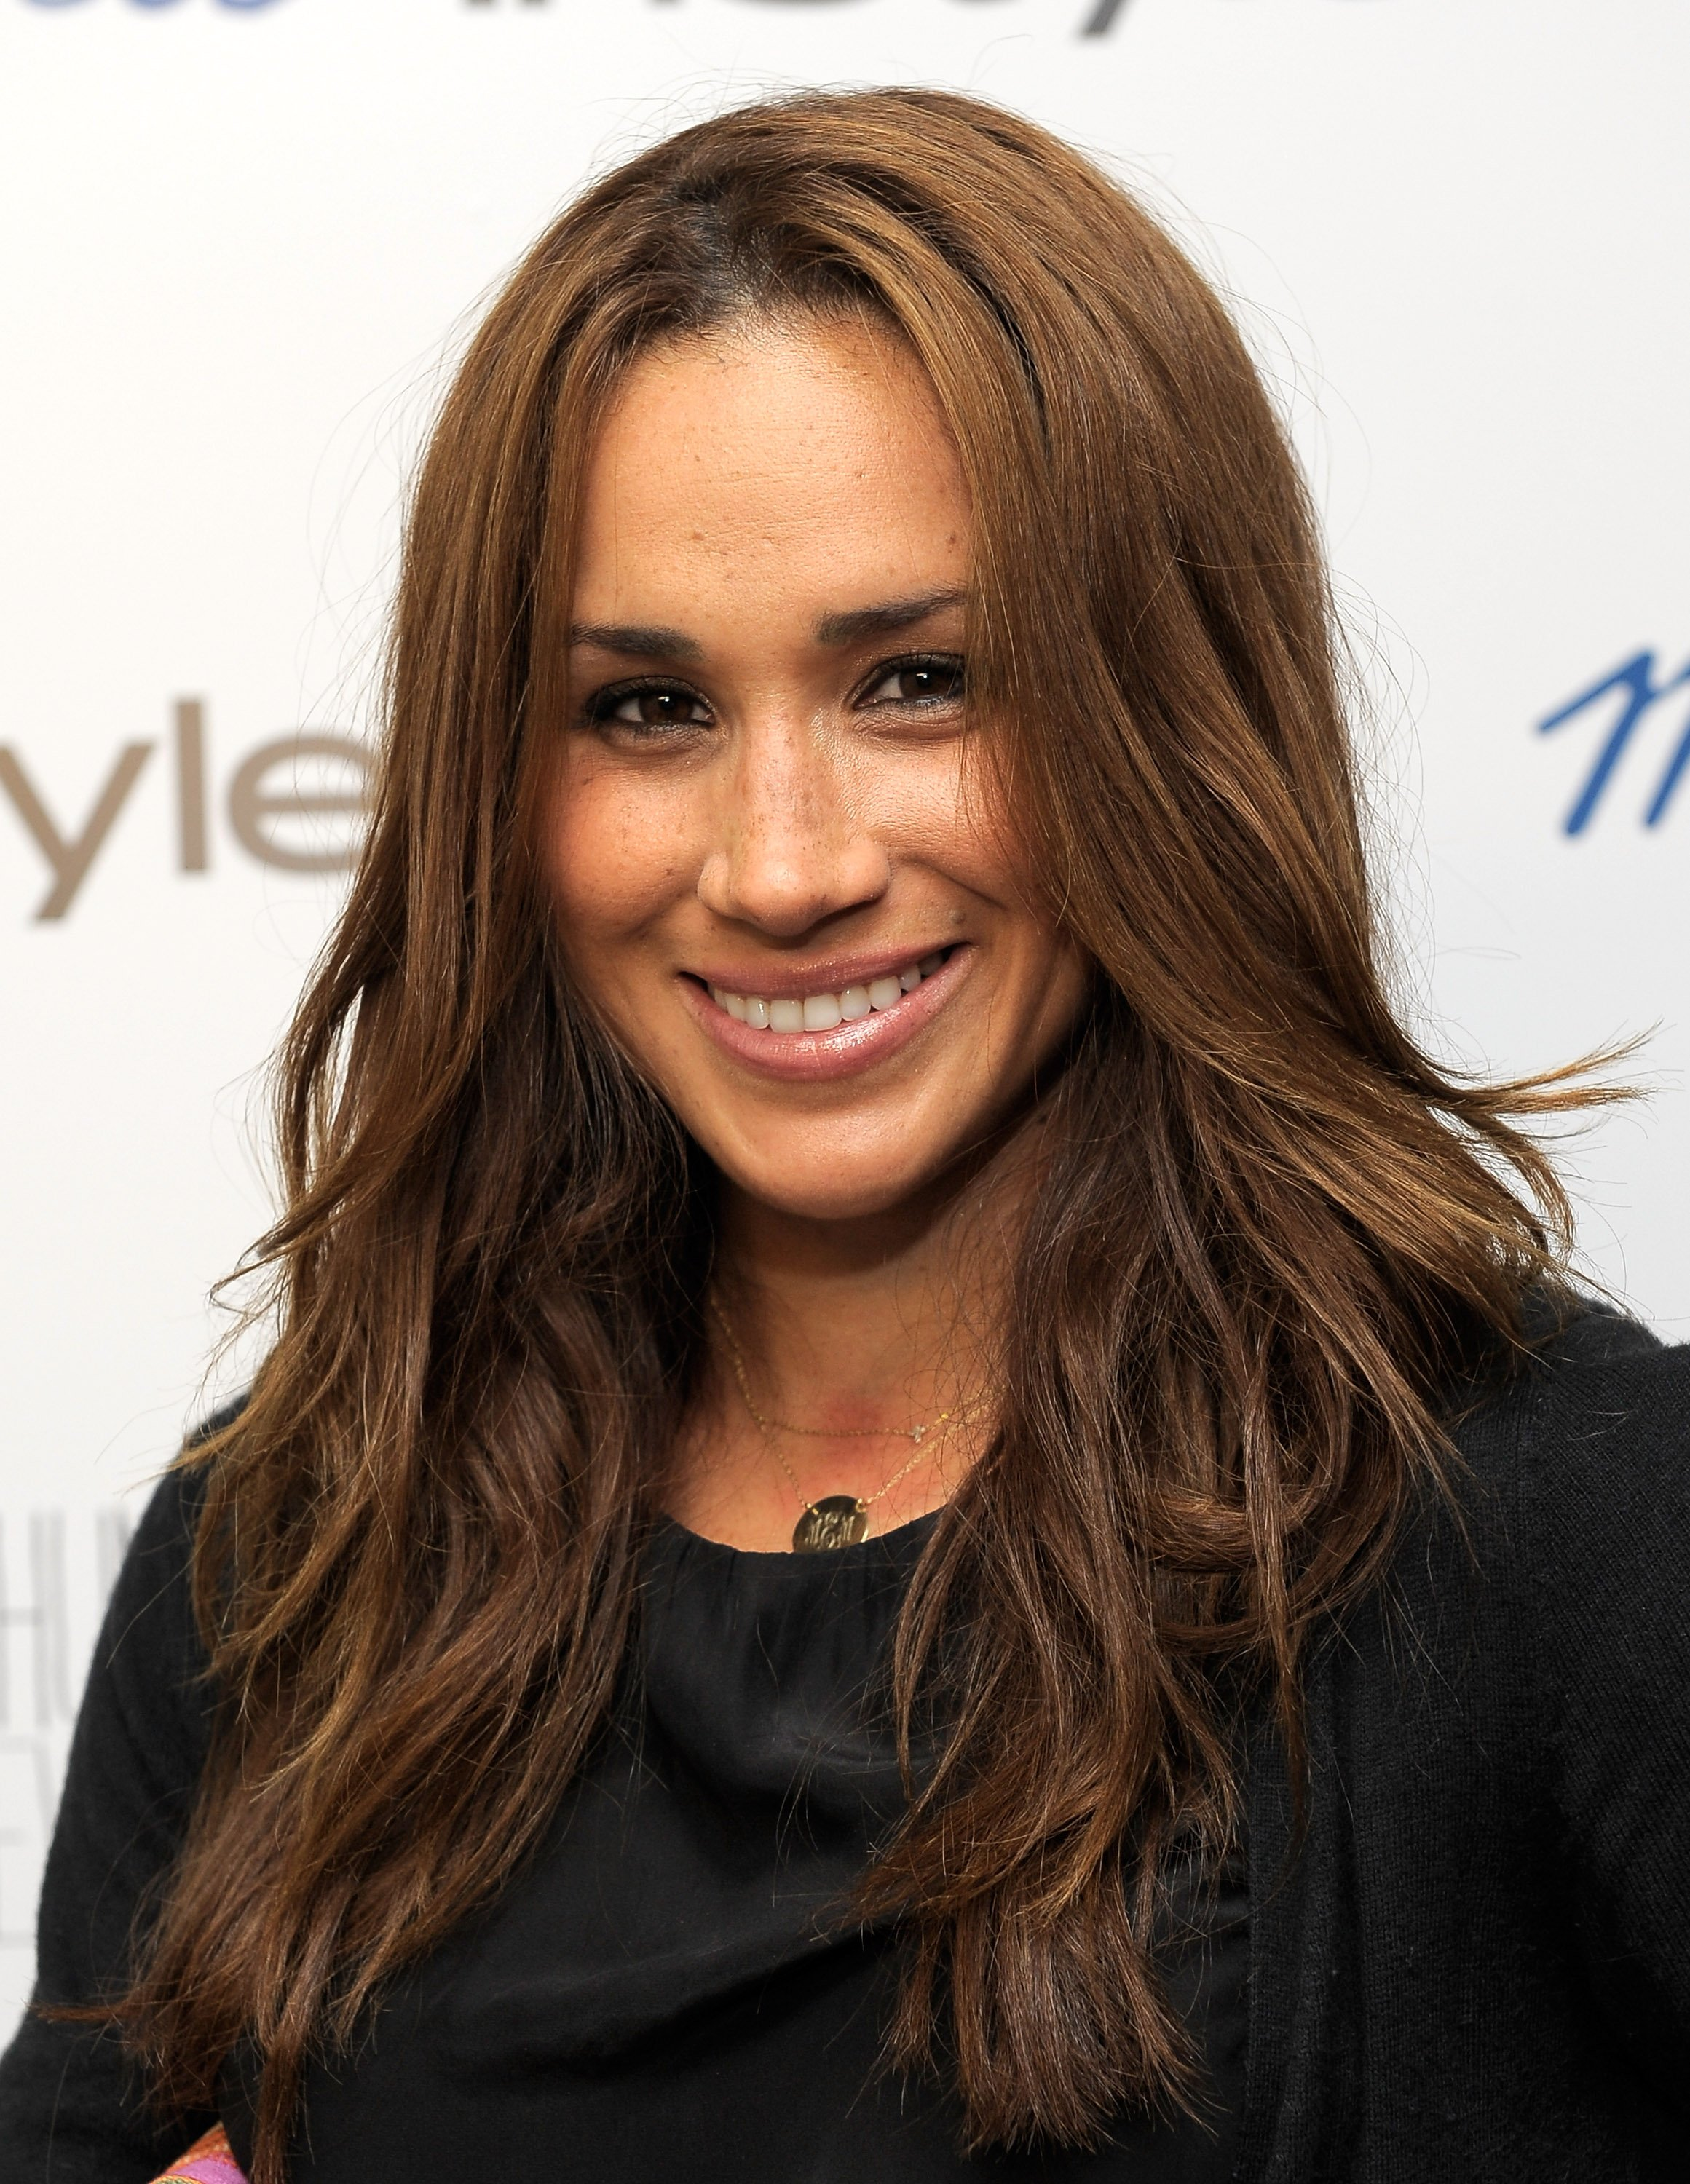 Image Credits: Getty Images / Charley Gallay / WireImage | Actress Meghan Markle attends Madewell, Alexa Chung & InStyle celebrate the launch of The Alexa Chung For Madewell Fall 2011 Collection at Chateau Marmont on September 21, 2011 in Los Angeles, California.